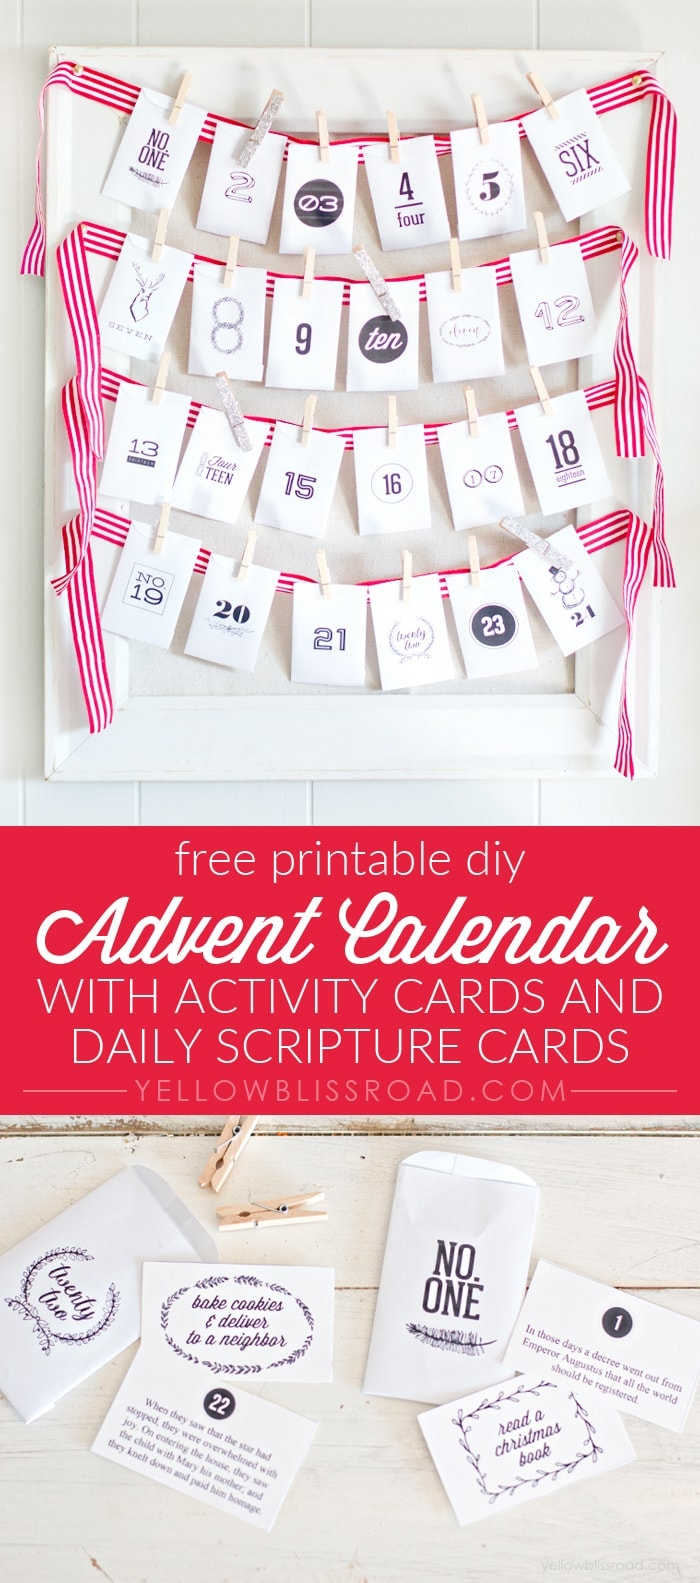 printable diy advent calendar with activity cards and scripture cards - Christmas Card Scripture